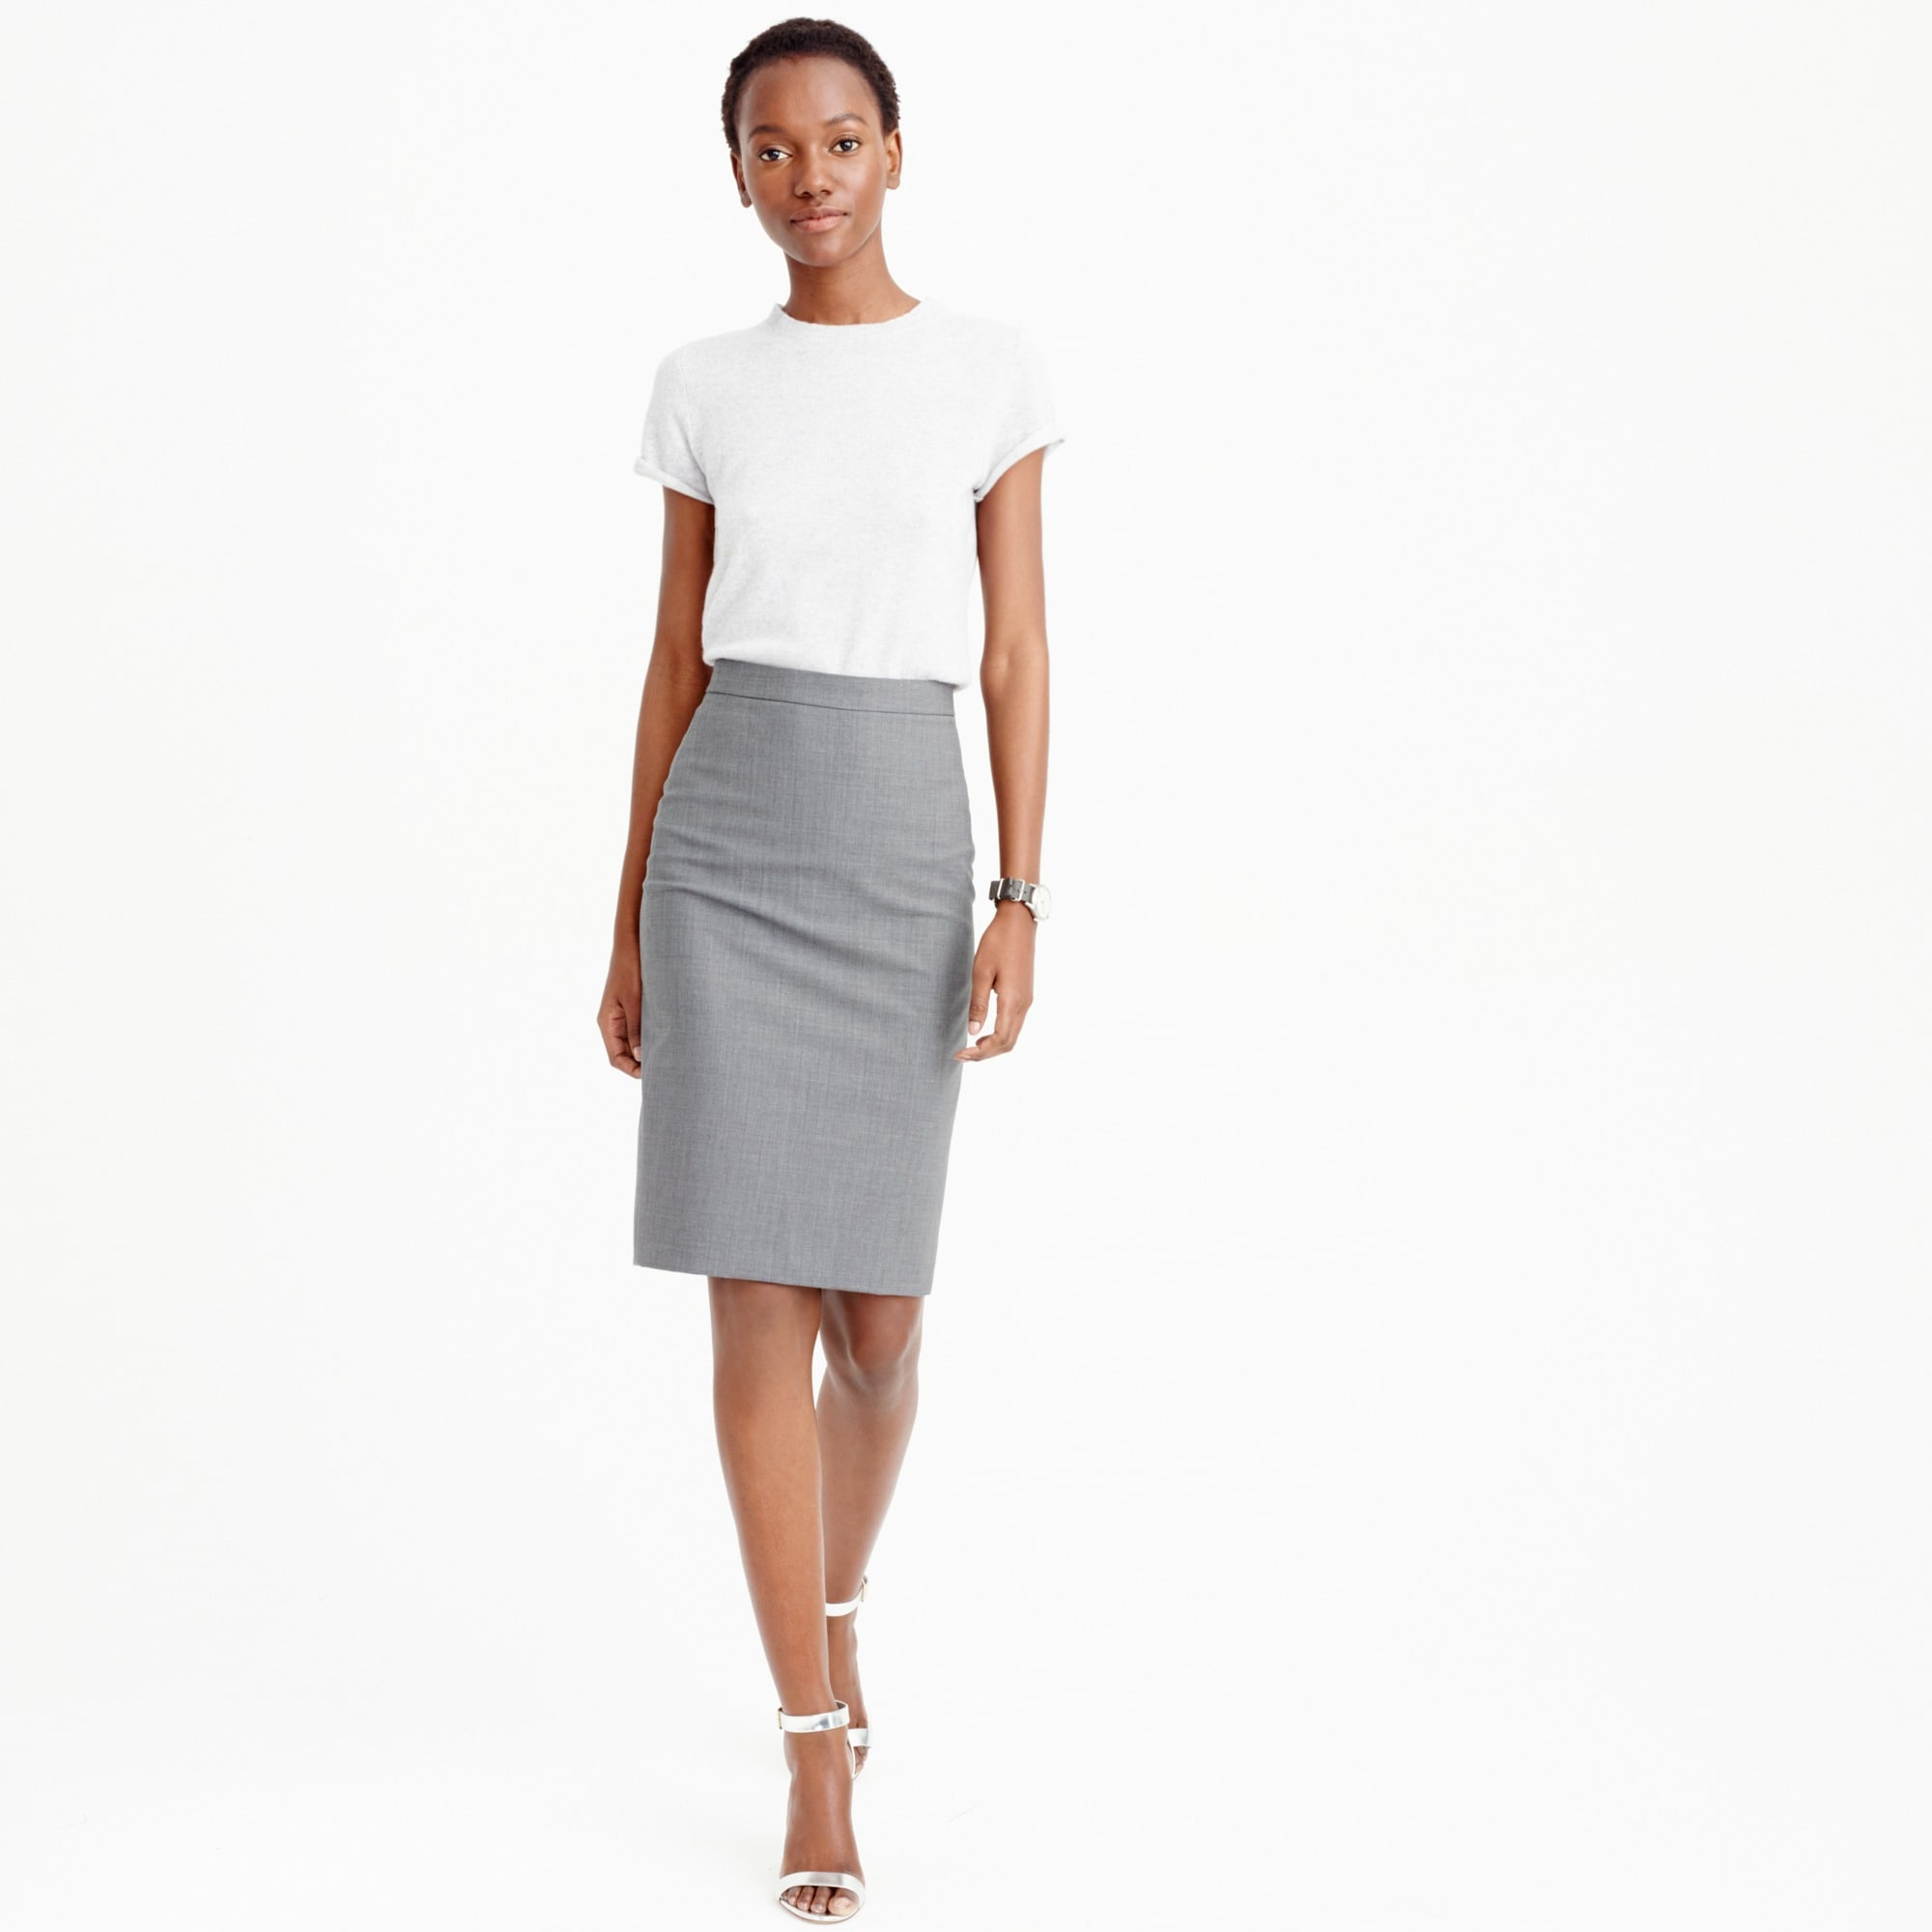 Petite pencil skirt in Italian stretch wool women petite c